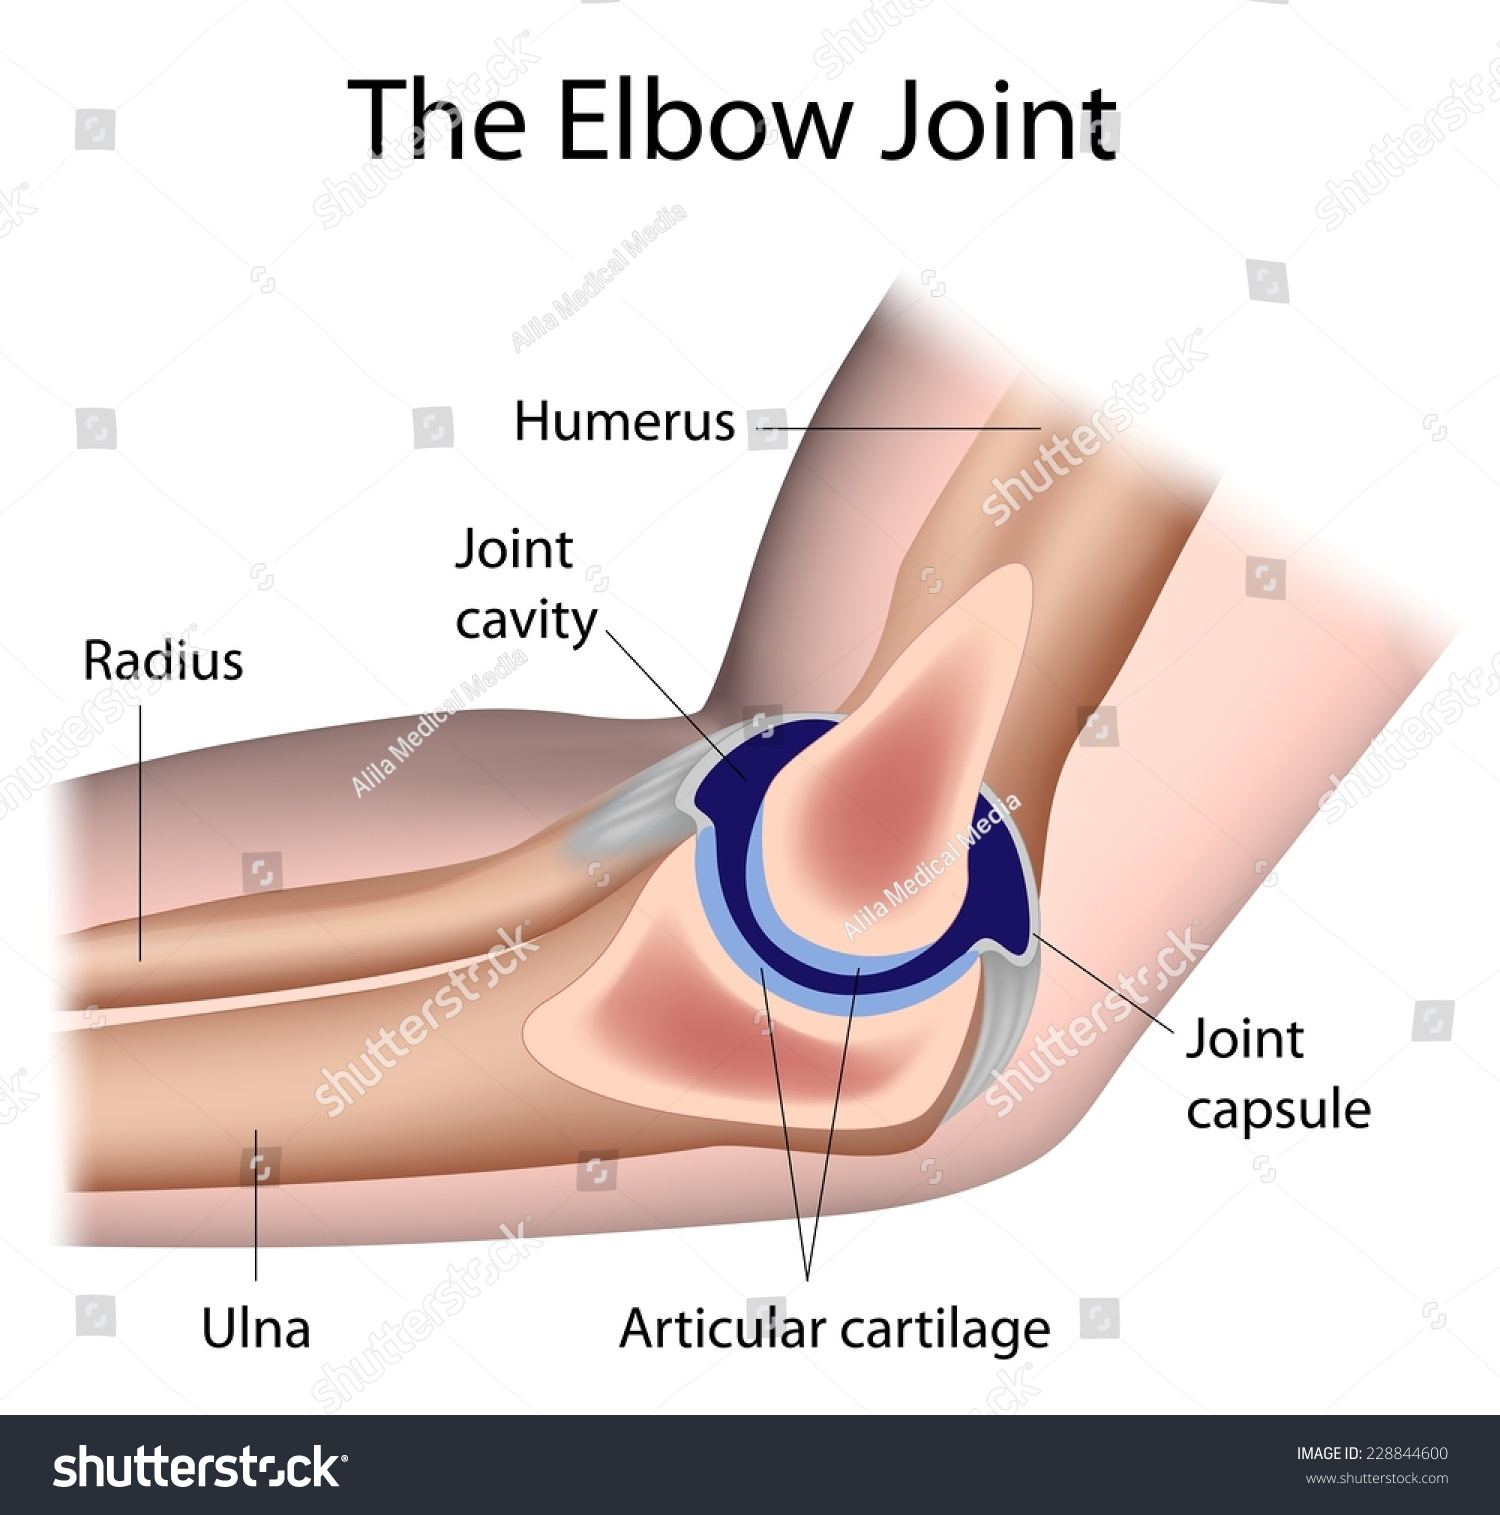 Royalty Free Stock Illustration Of Elbow Joint Anatomy Labeled Stock